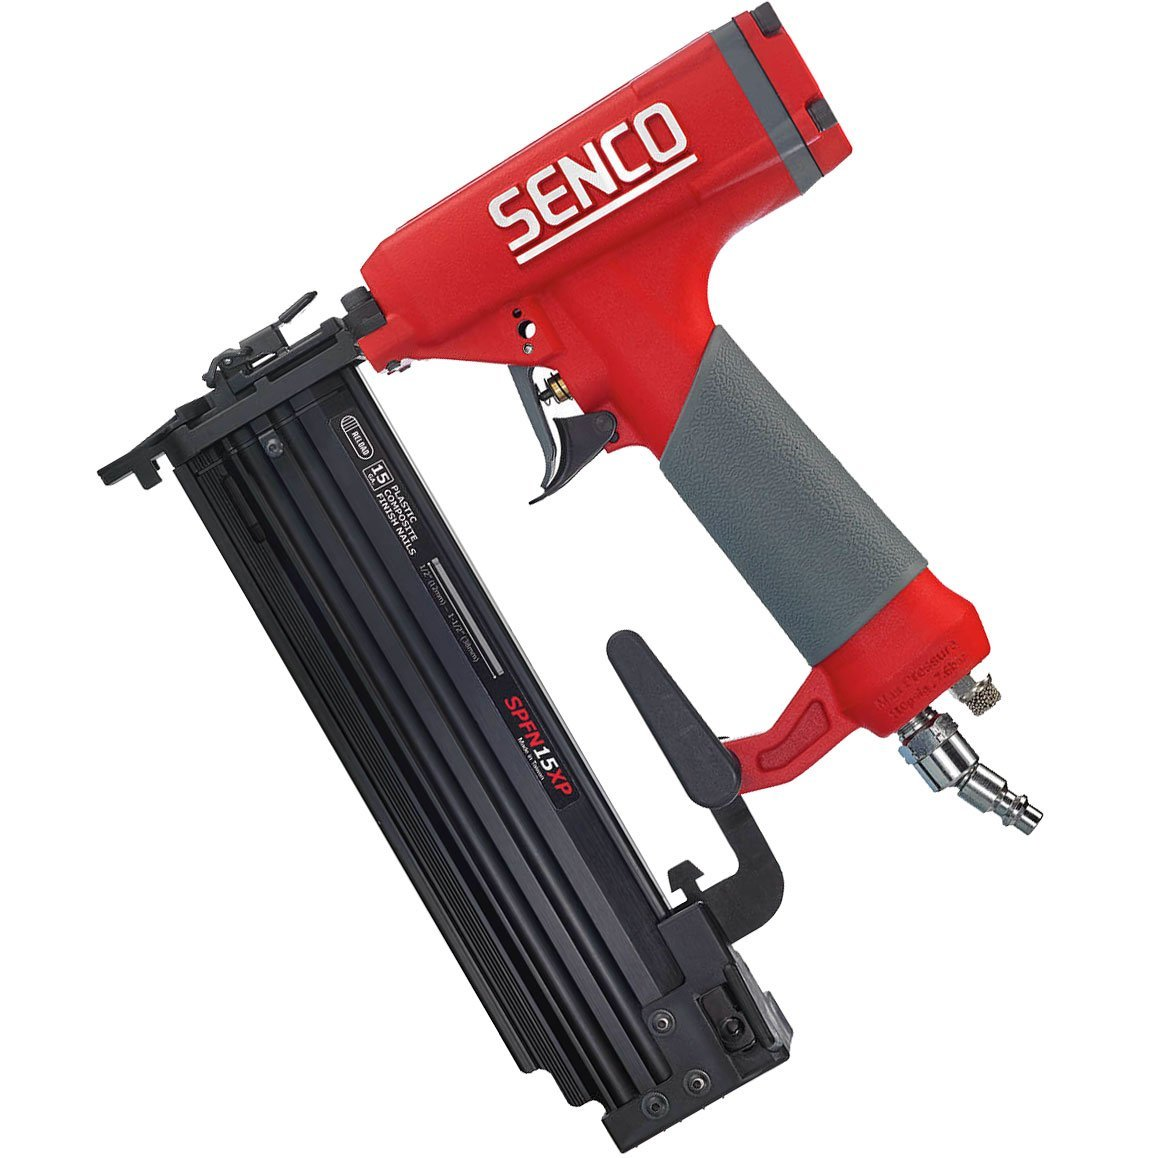 "SENCO SPFN15XP 15 Gauge Composite Finish Nailer, 1 2"" to 1-1 2"" by Senco Tools"